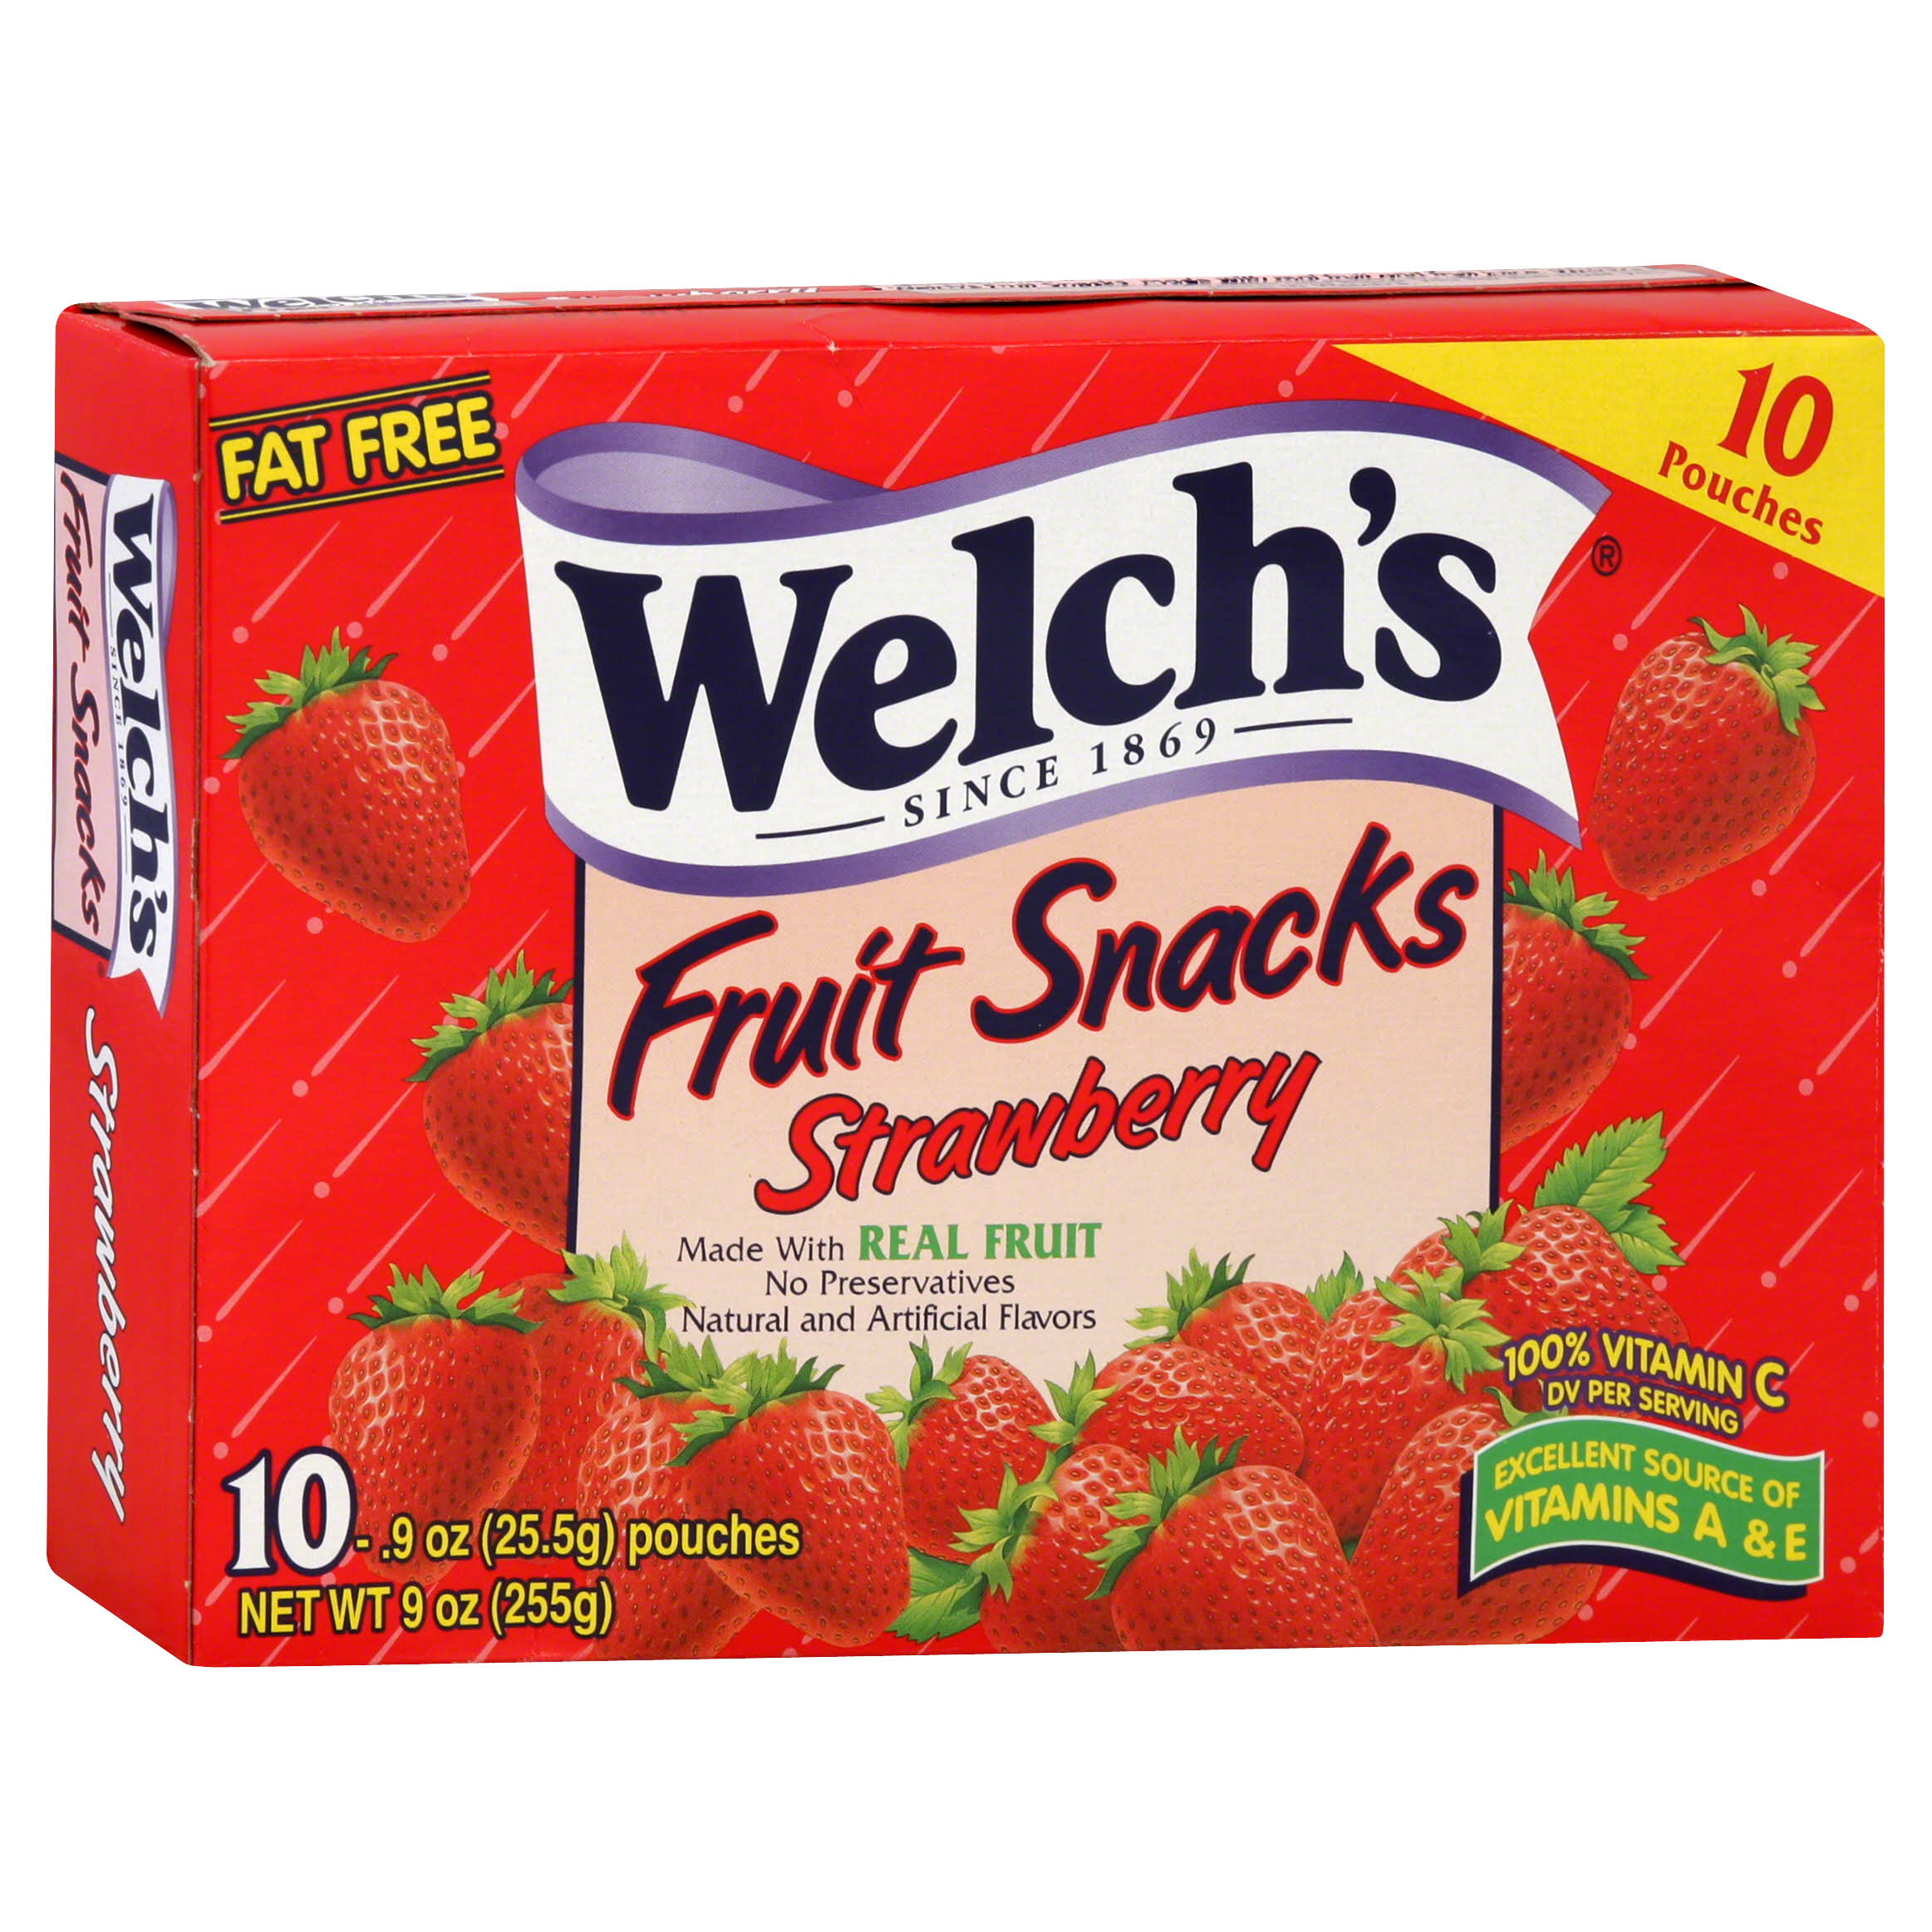 Welch's Fruit Snacks - Strawberry, 0.9oz, 10ct